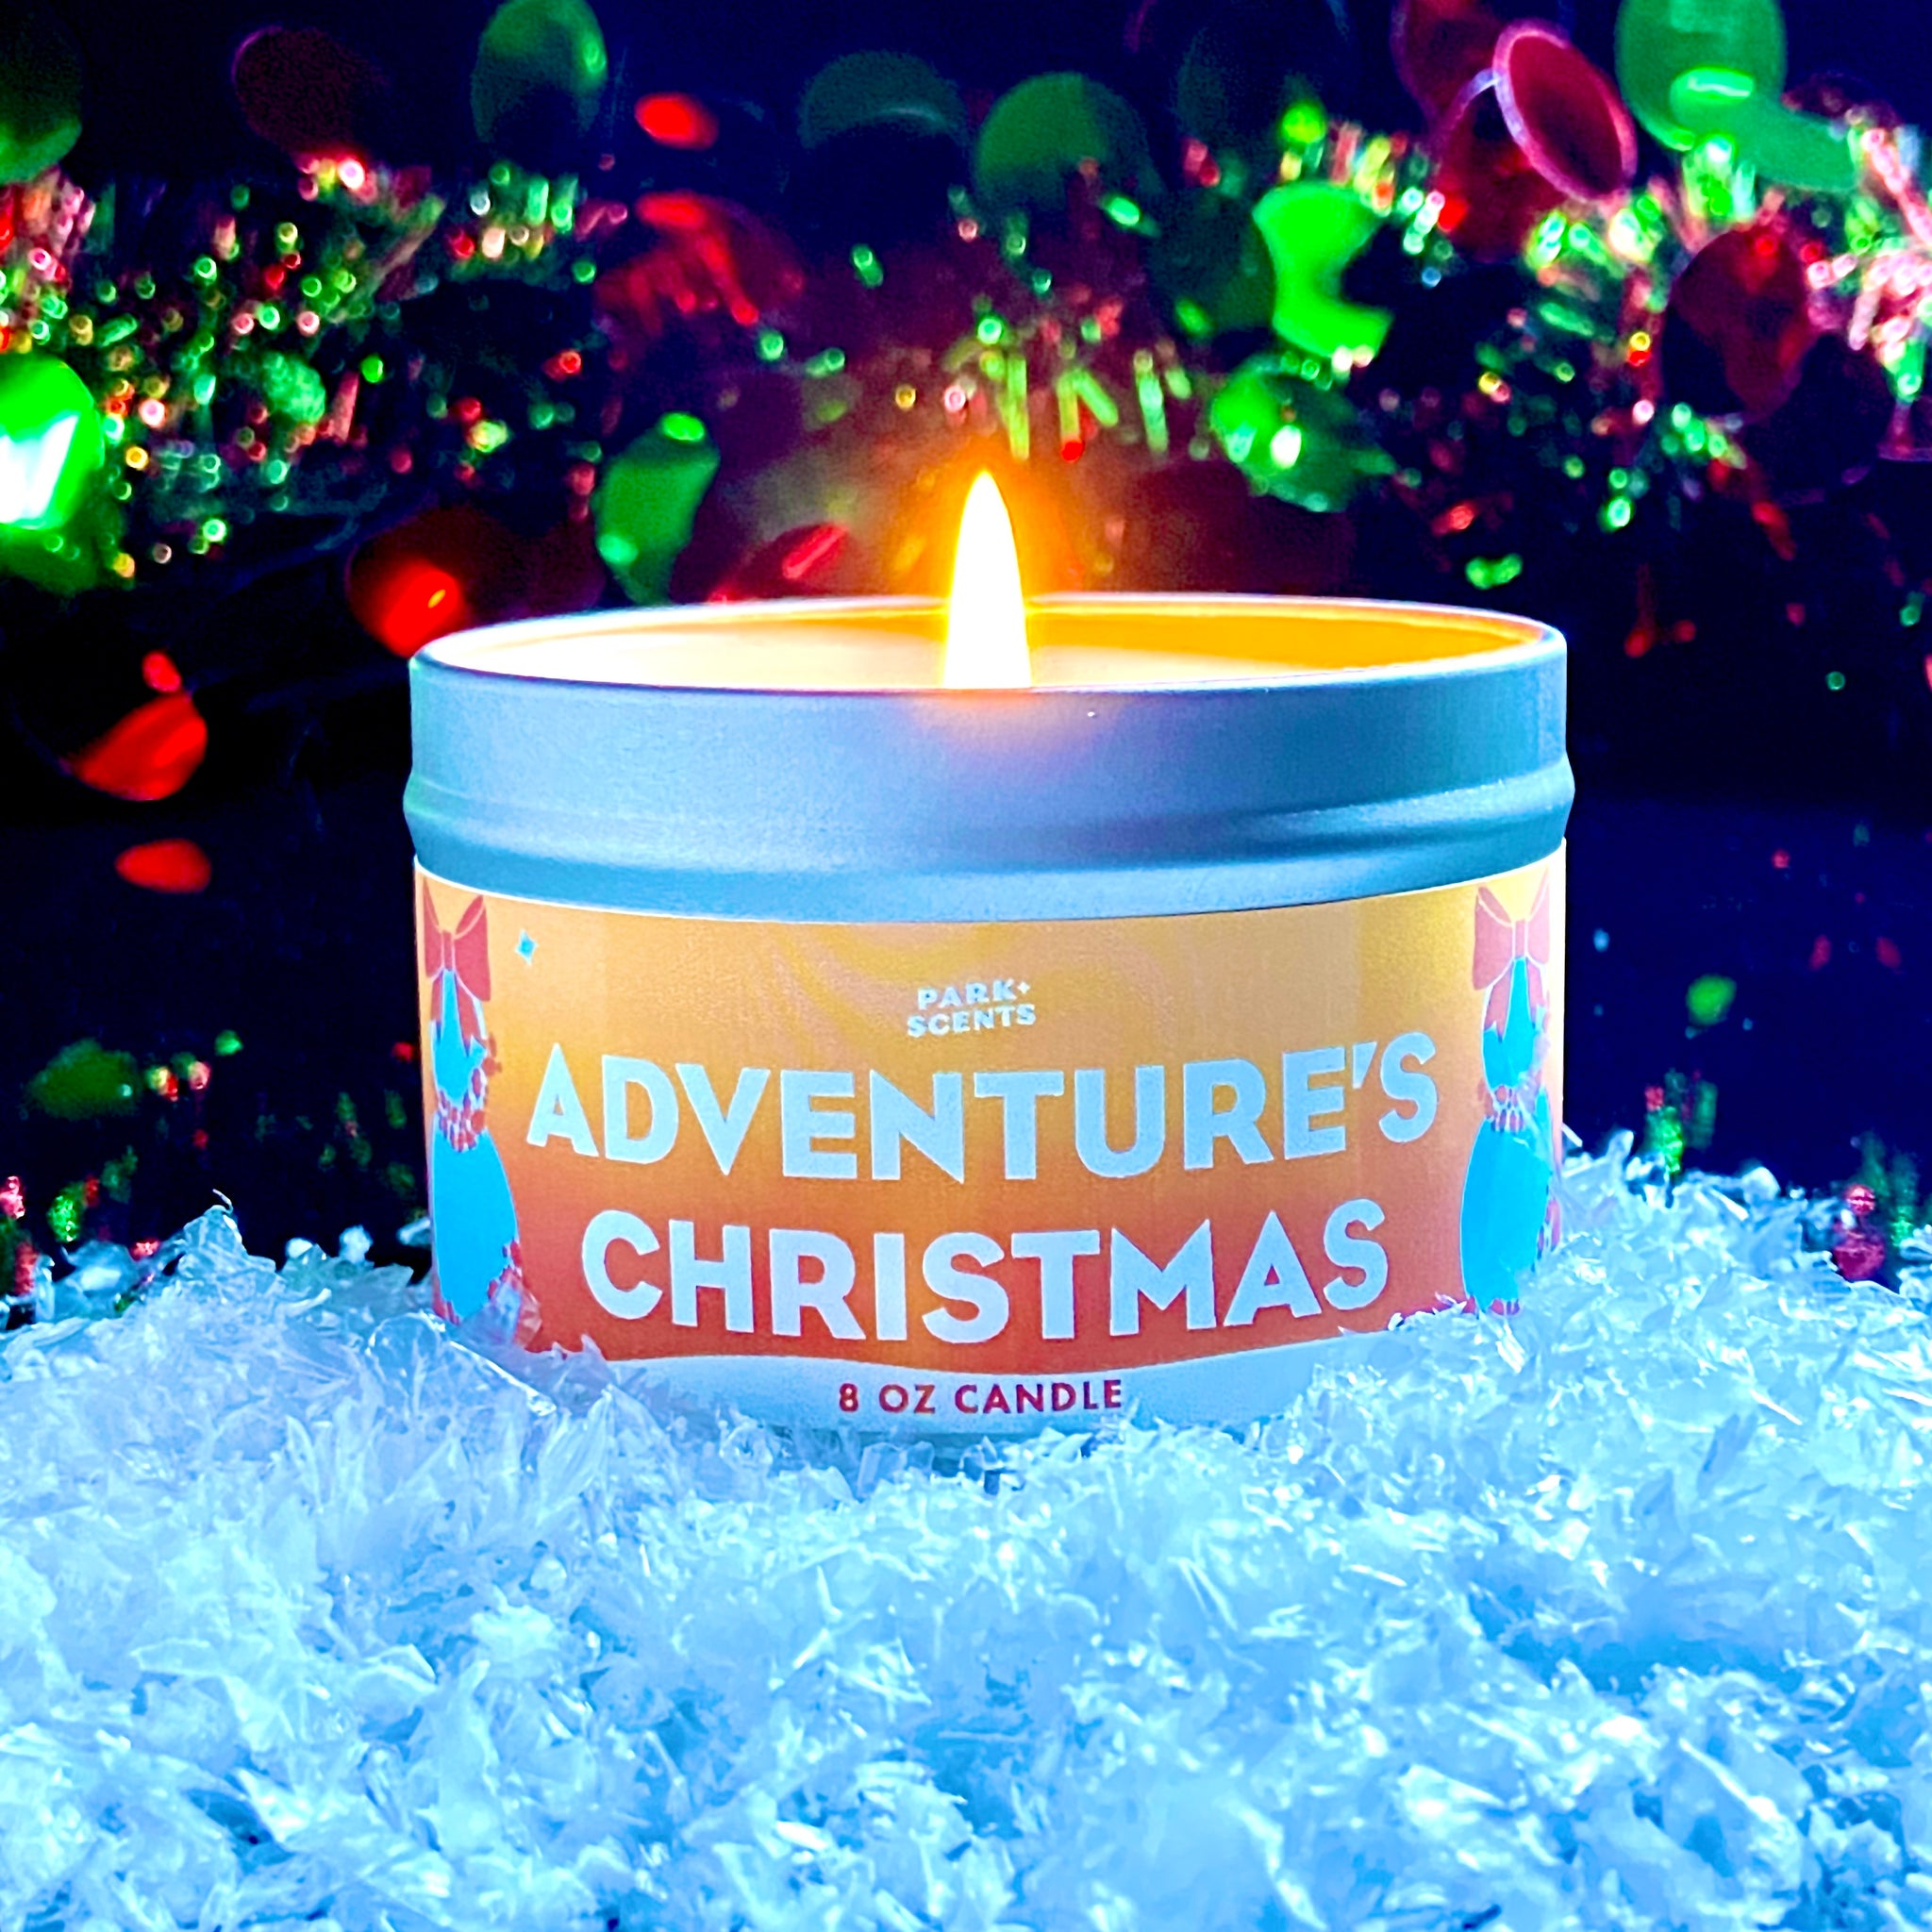 Adventure's Christmas Candle